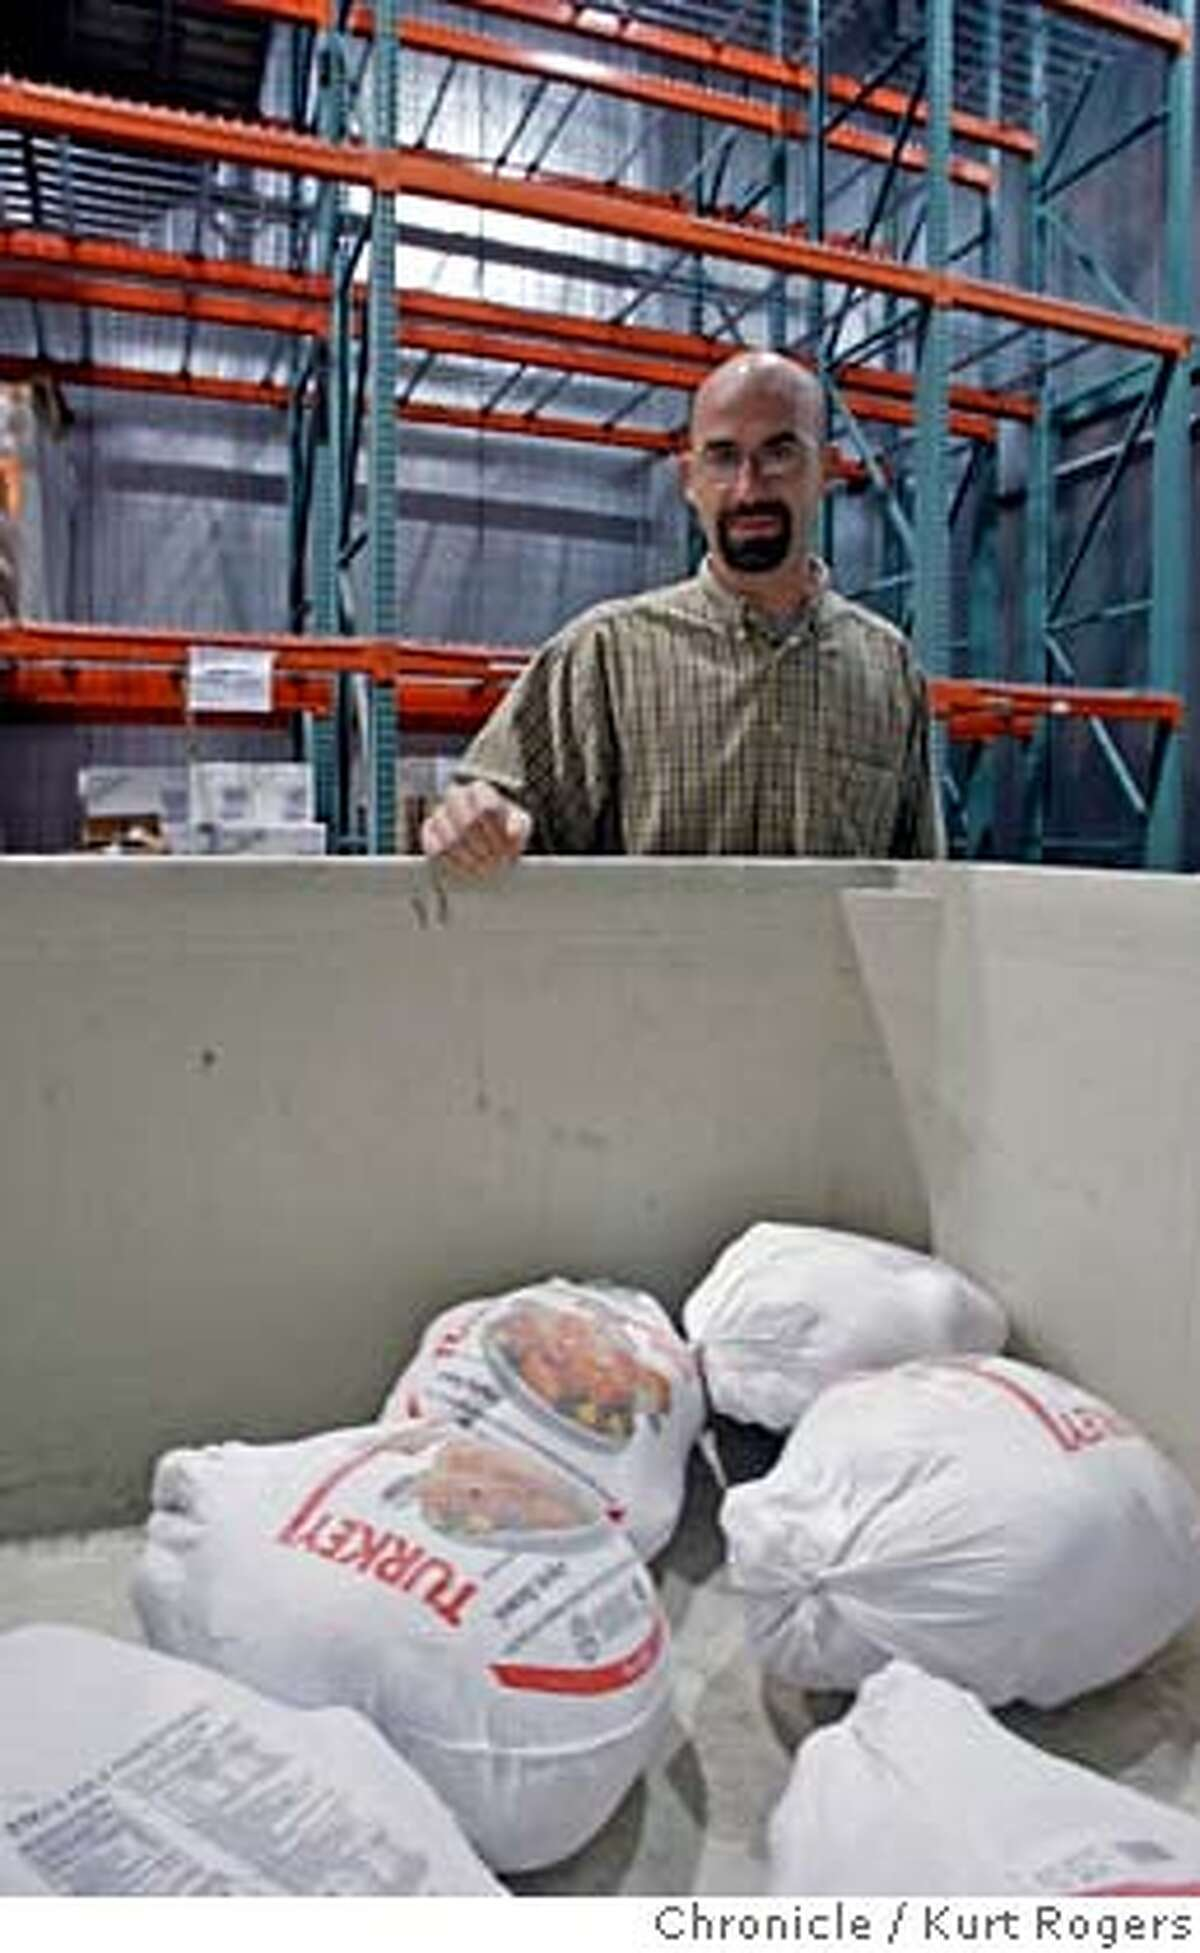 John Curry who is the resource manager at the San Francisco Food bank where they are short Turkeys for this Thanksgiving. John in side the freezer at the food bank looks into a been that would be full, also the shelves behind him are empty they would have Turkeys on them this time of year. TURKEYS15_0031_KR.jpg Kurt Rogers / The Chronicle Photo taken on 11/14/07, in San Francisco, CA, USA MANDATORY CREDIT FOR PHOTOG AND SAN FRANCISCO CHRONICLE/NO SALES-MAGS OUT